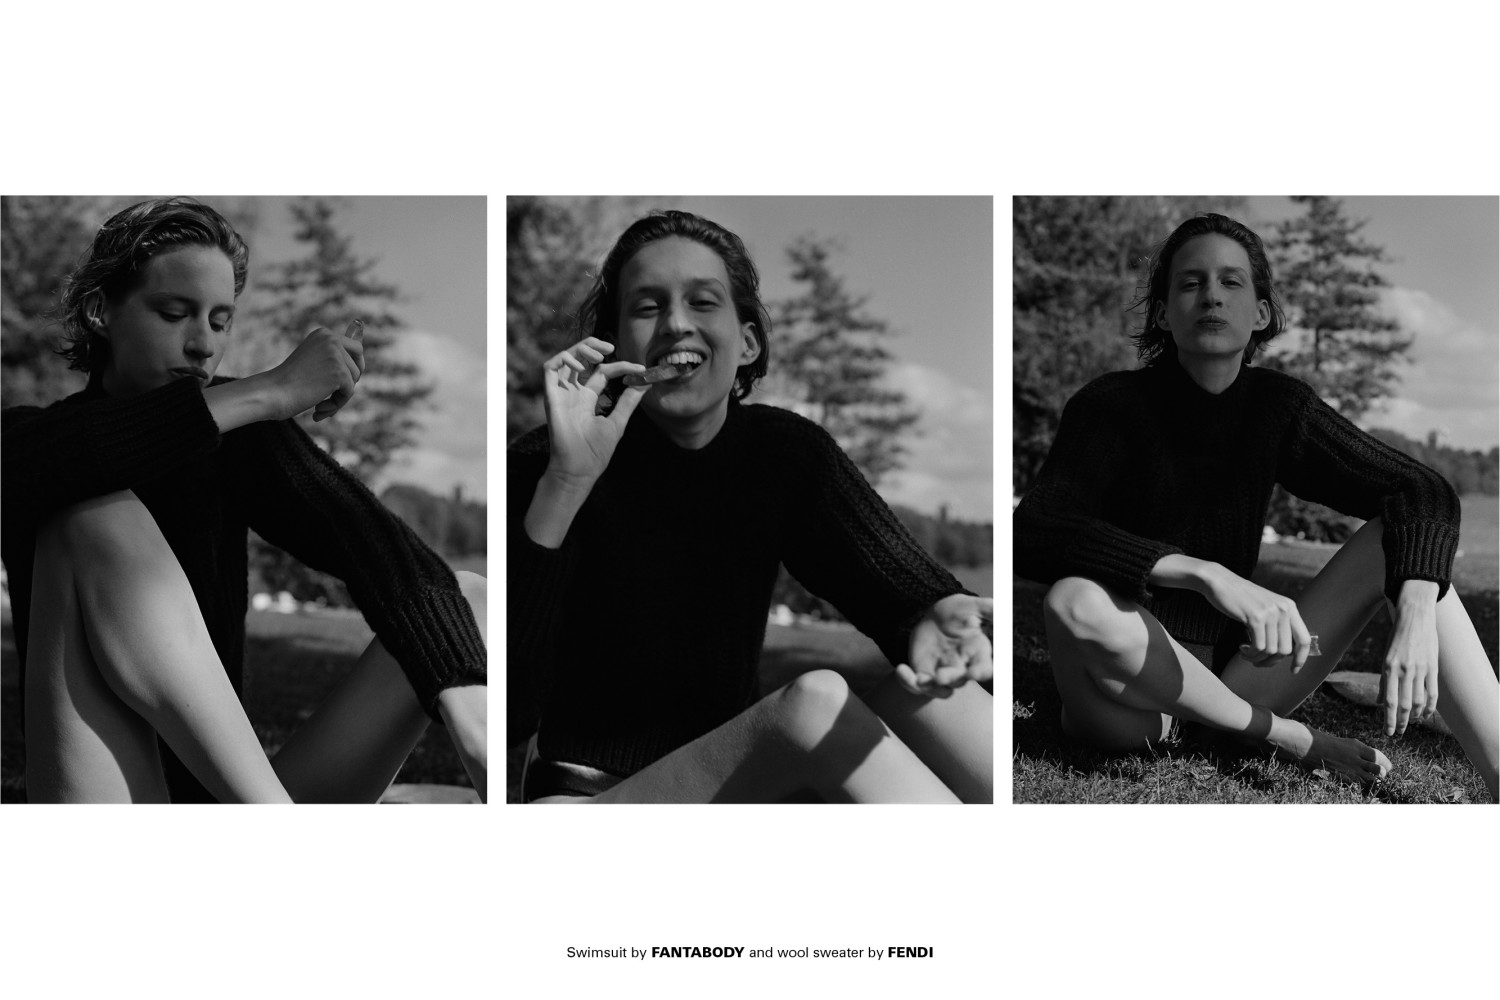 Luca Adamik for Soap Opera Fanzine